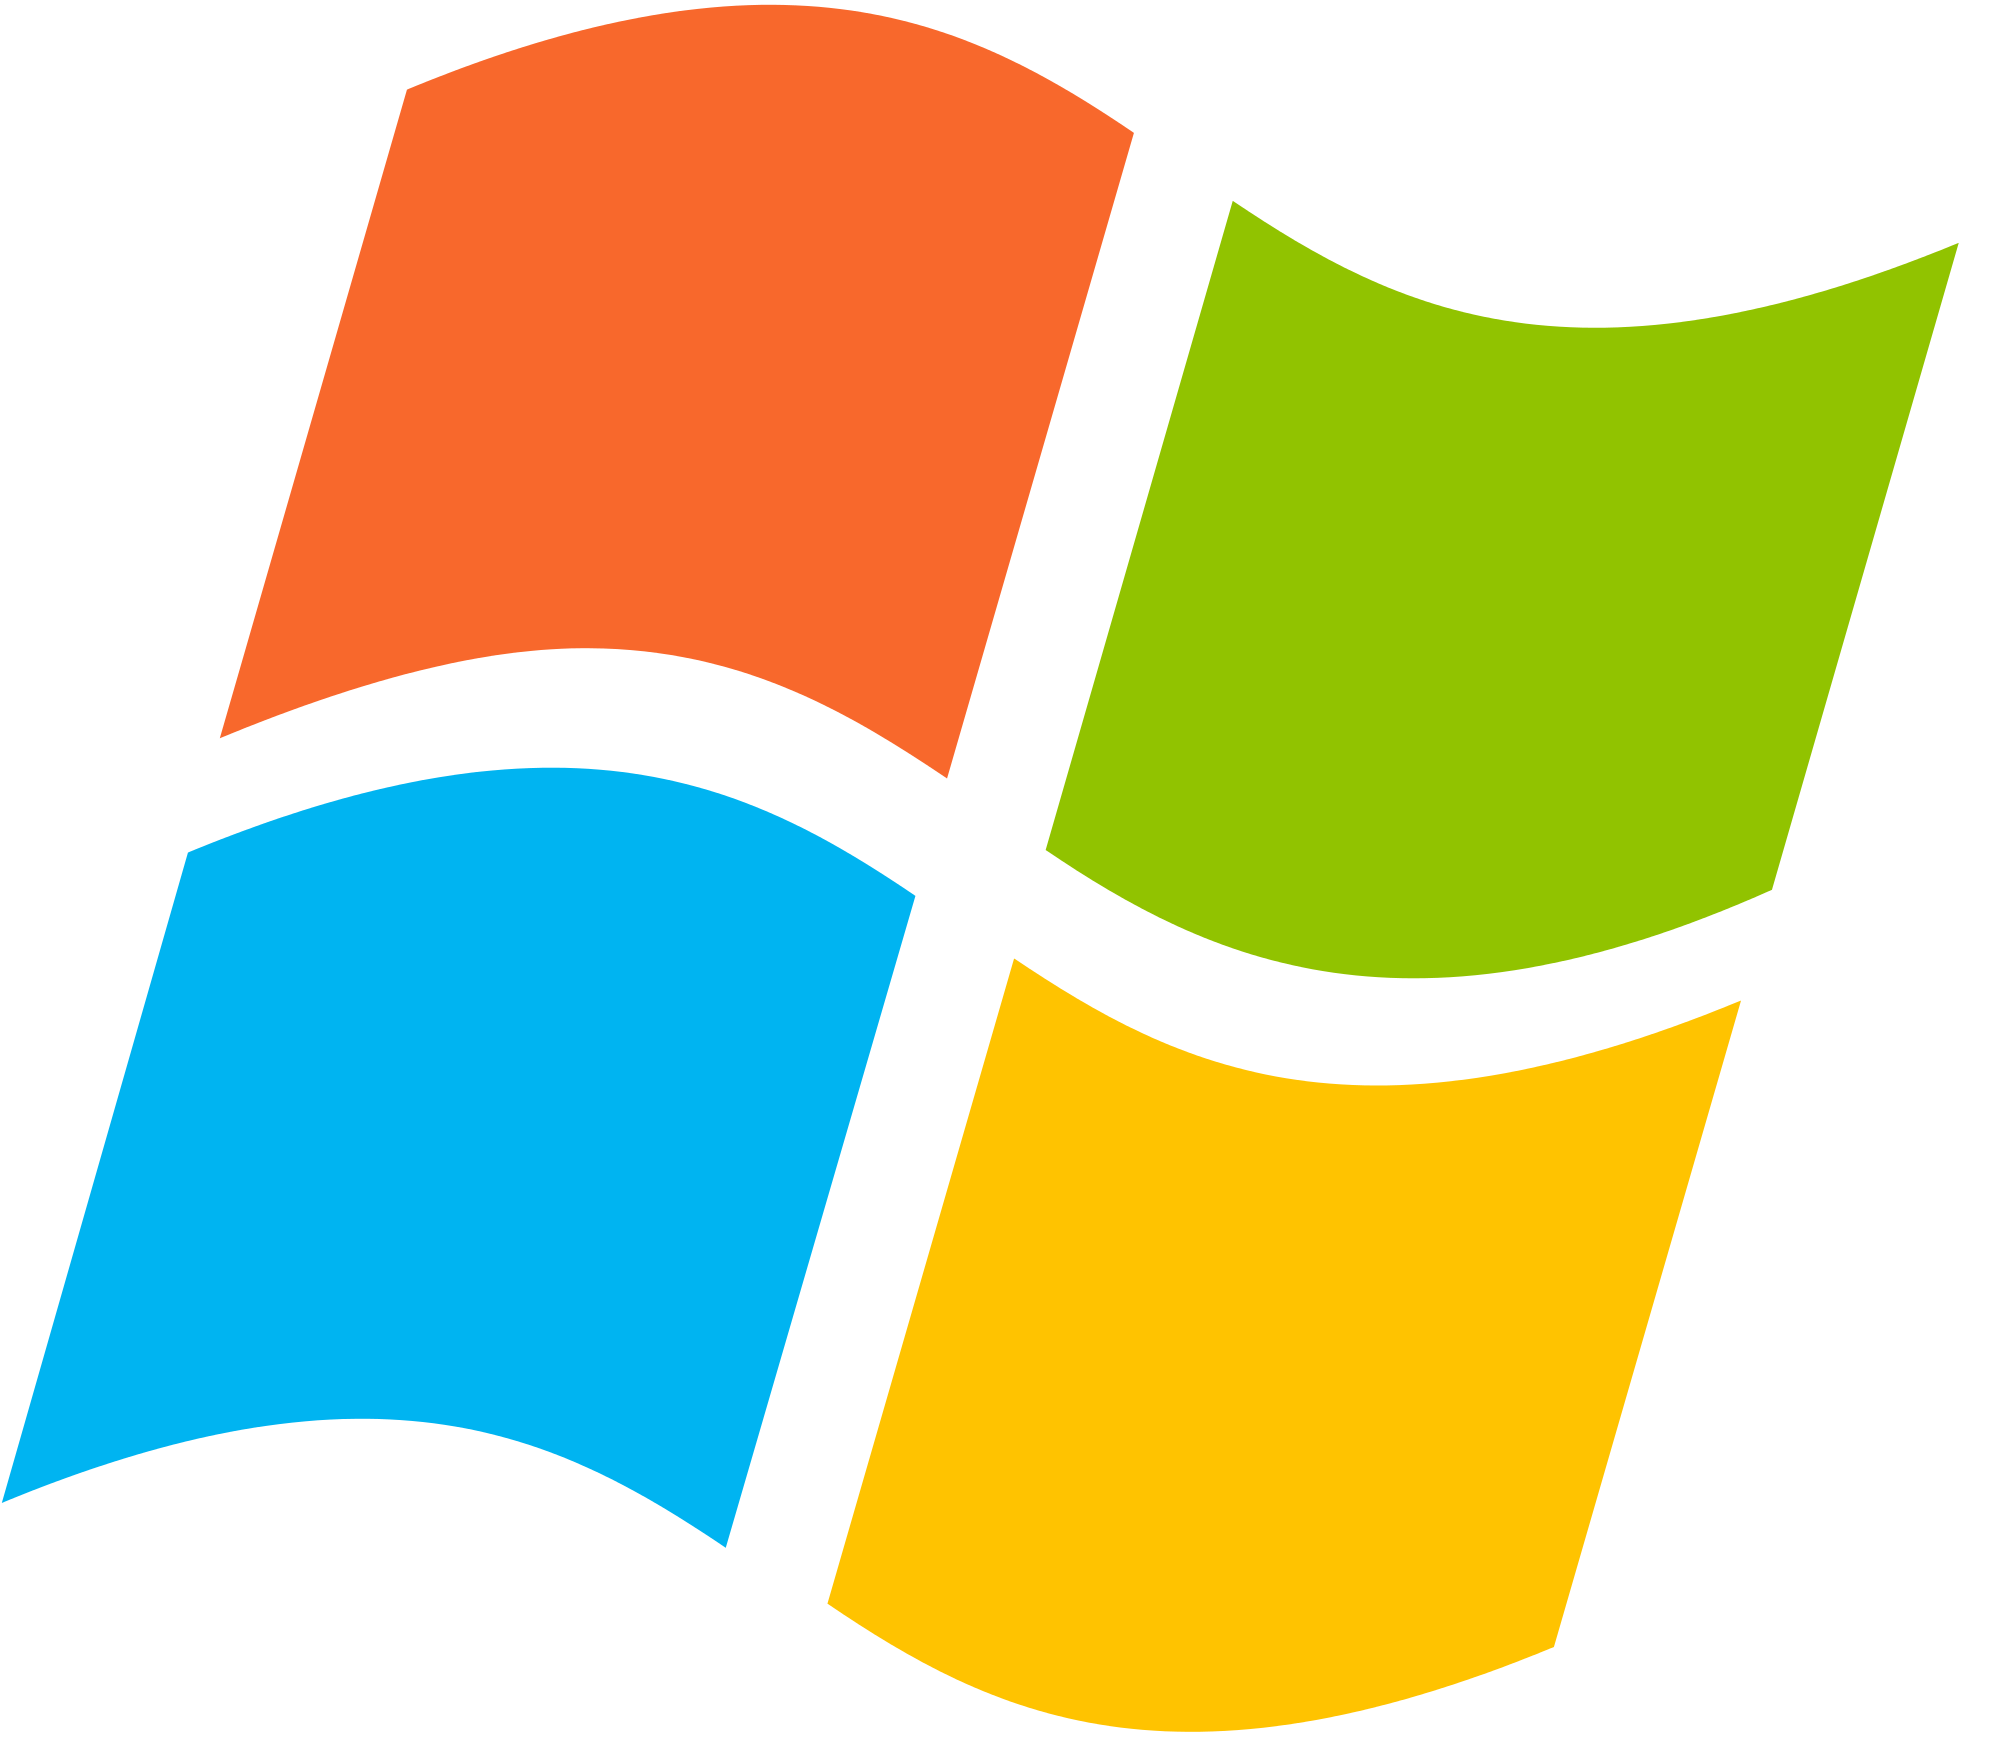 File:Windows logo.